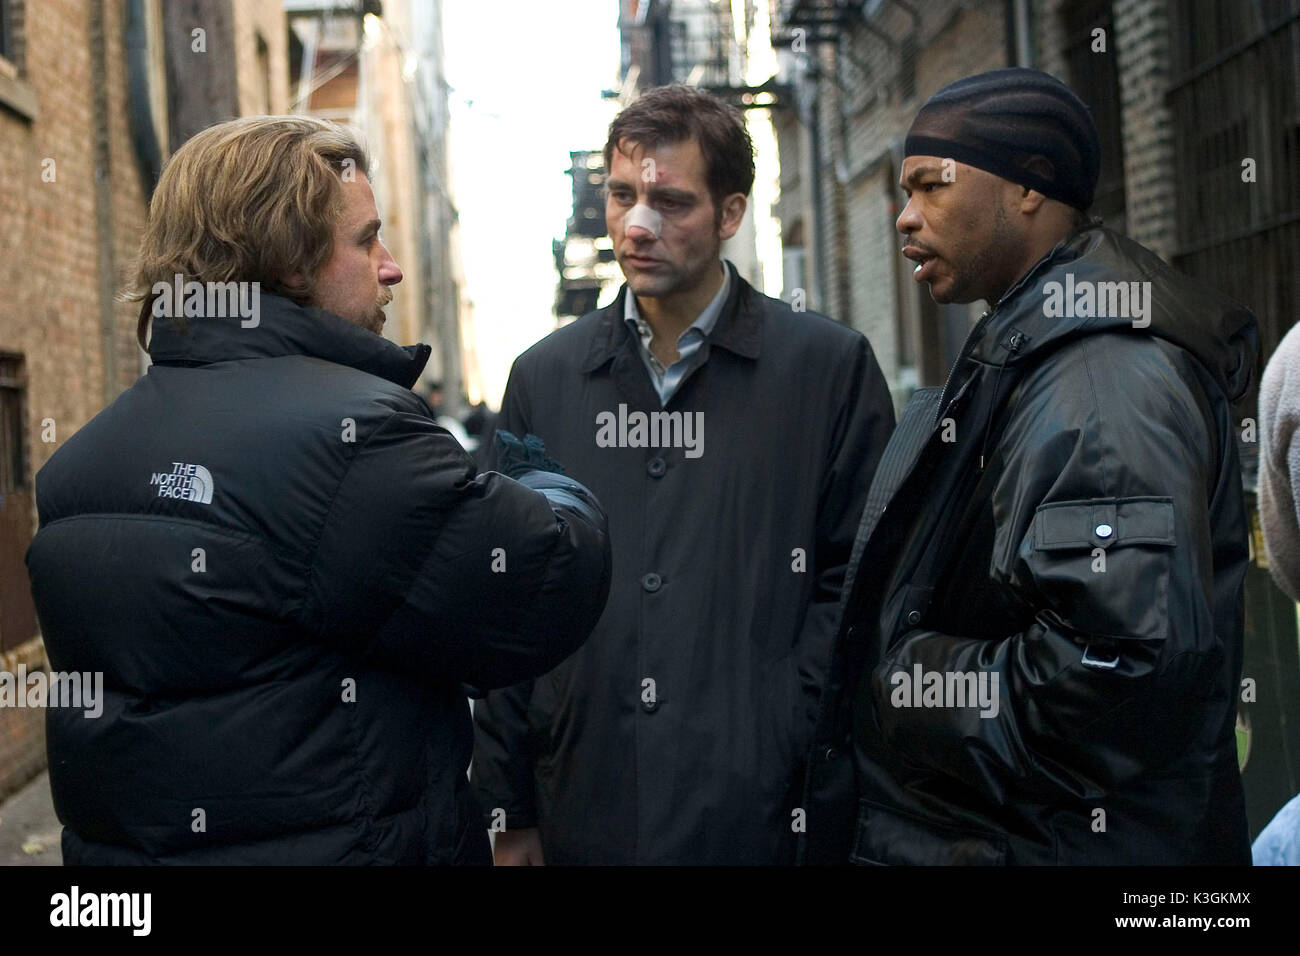 A scene from DERAILED, starring Clive Owen, Jennifer Aniston, Melissa George, Vincent Cassel, RZA and Xzibit. Based on the best-selling novel by James Seigel, DERAILED marks the English language debut feature film by Swedish director Mikael Håfström. Pictured: Clive Owen, Xzibit DERAILED      Date: 2005 - Stock Image